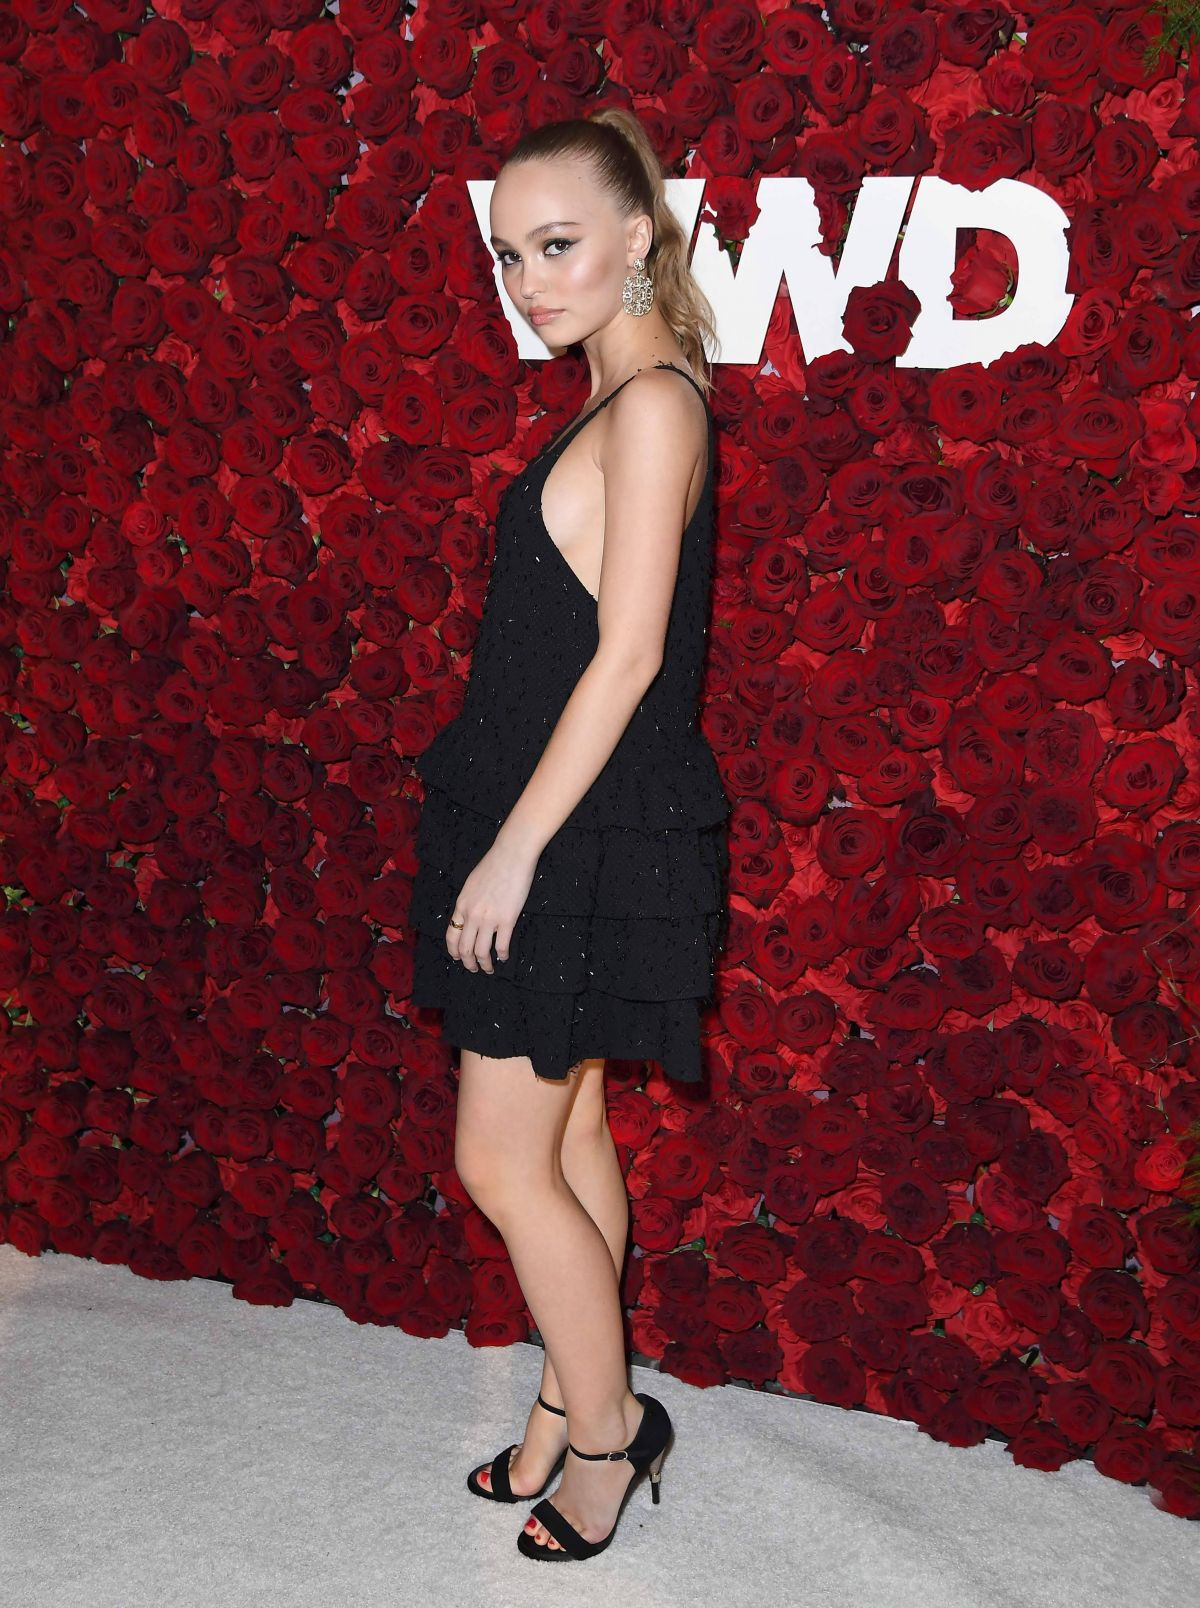 Lily-Rose Depp At 2nd Annual WWD Honors in NY